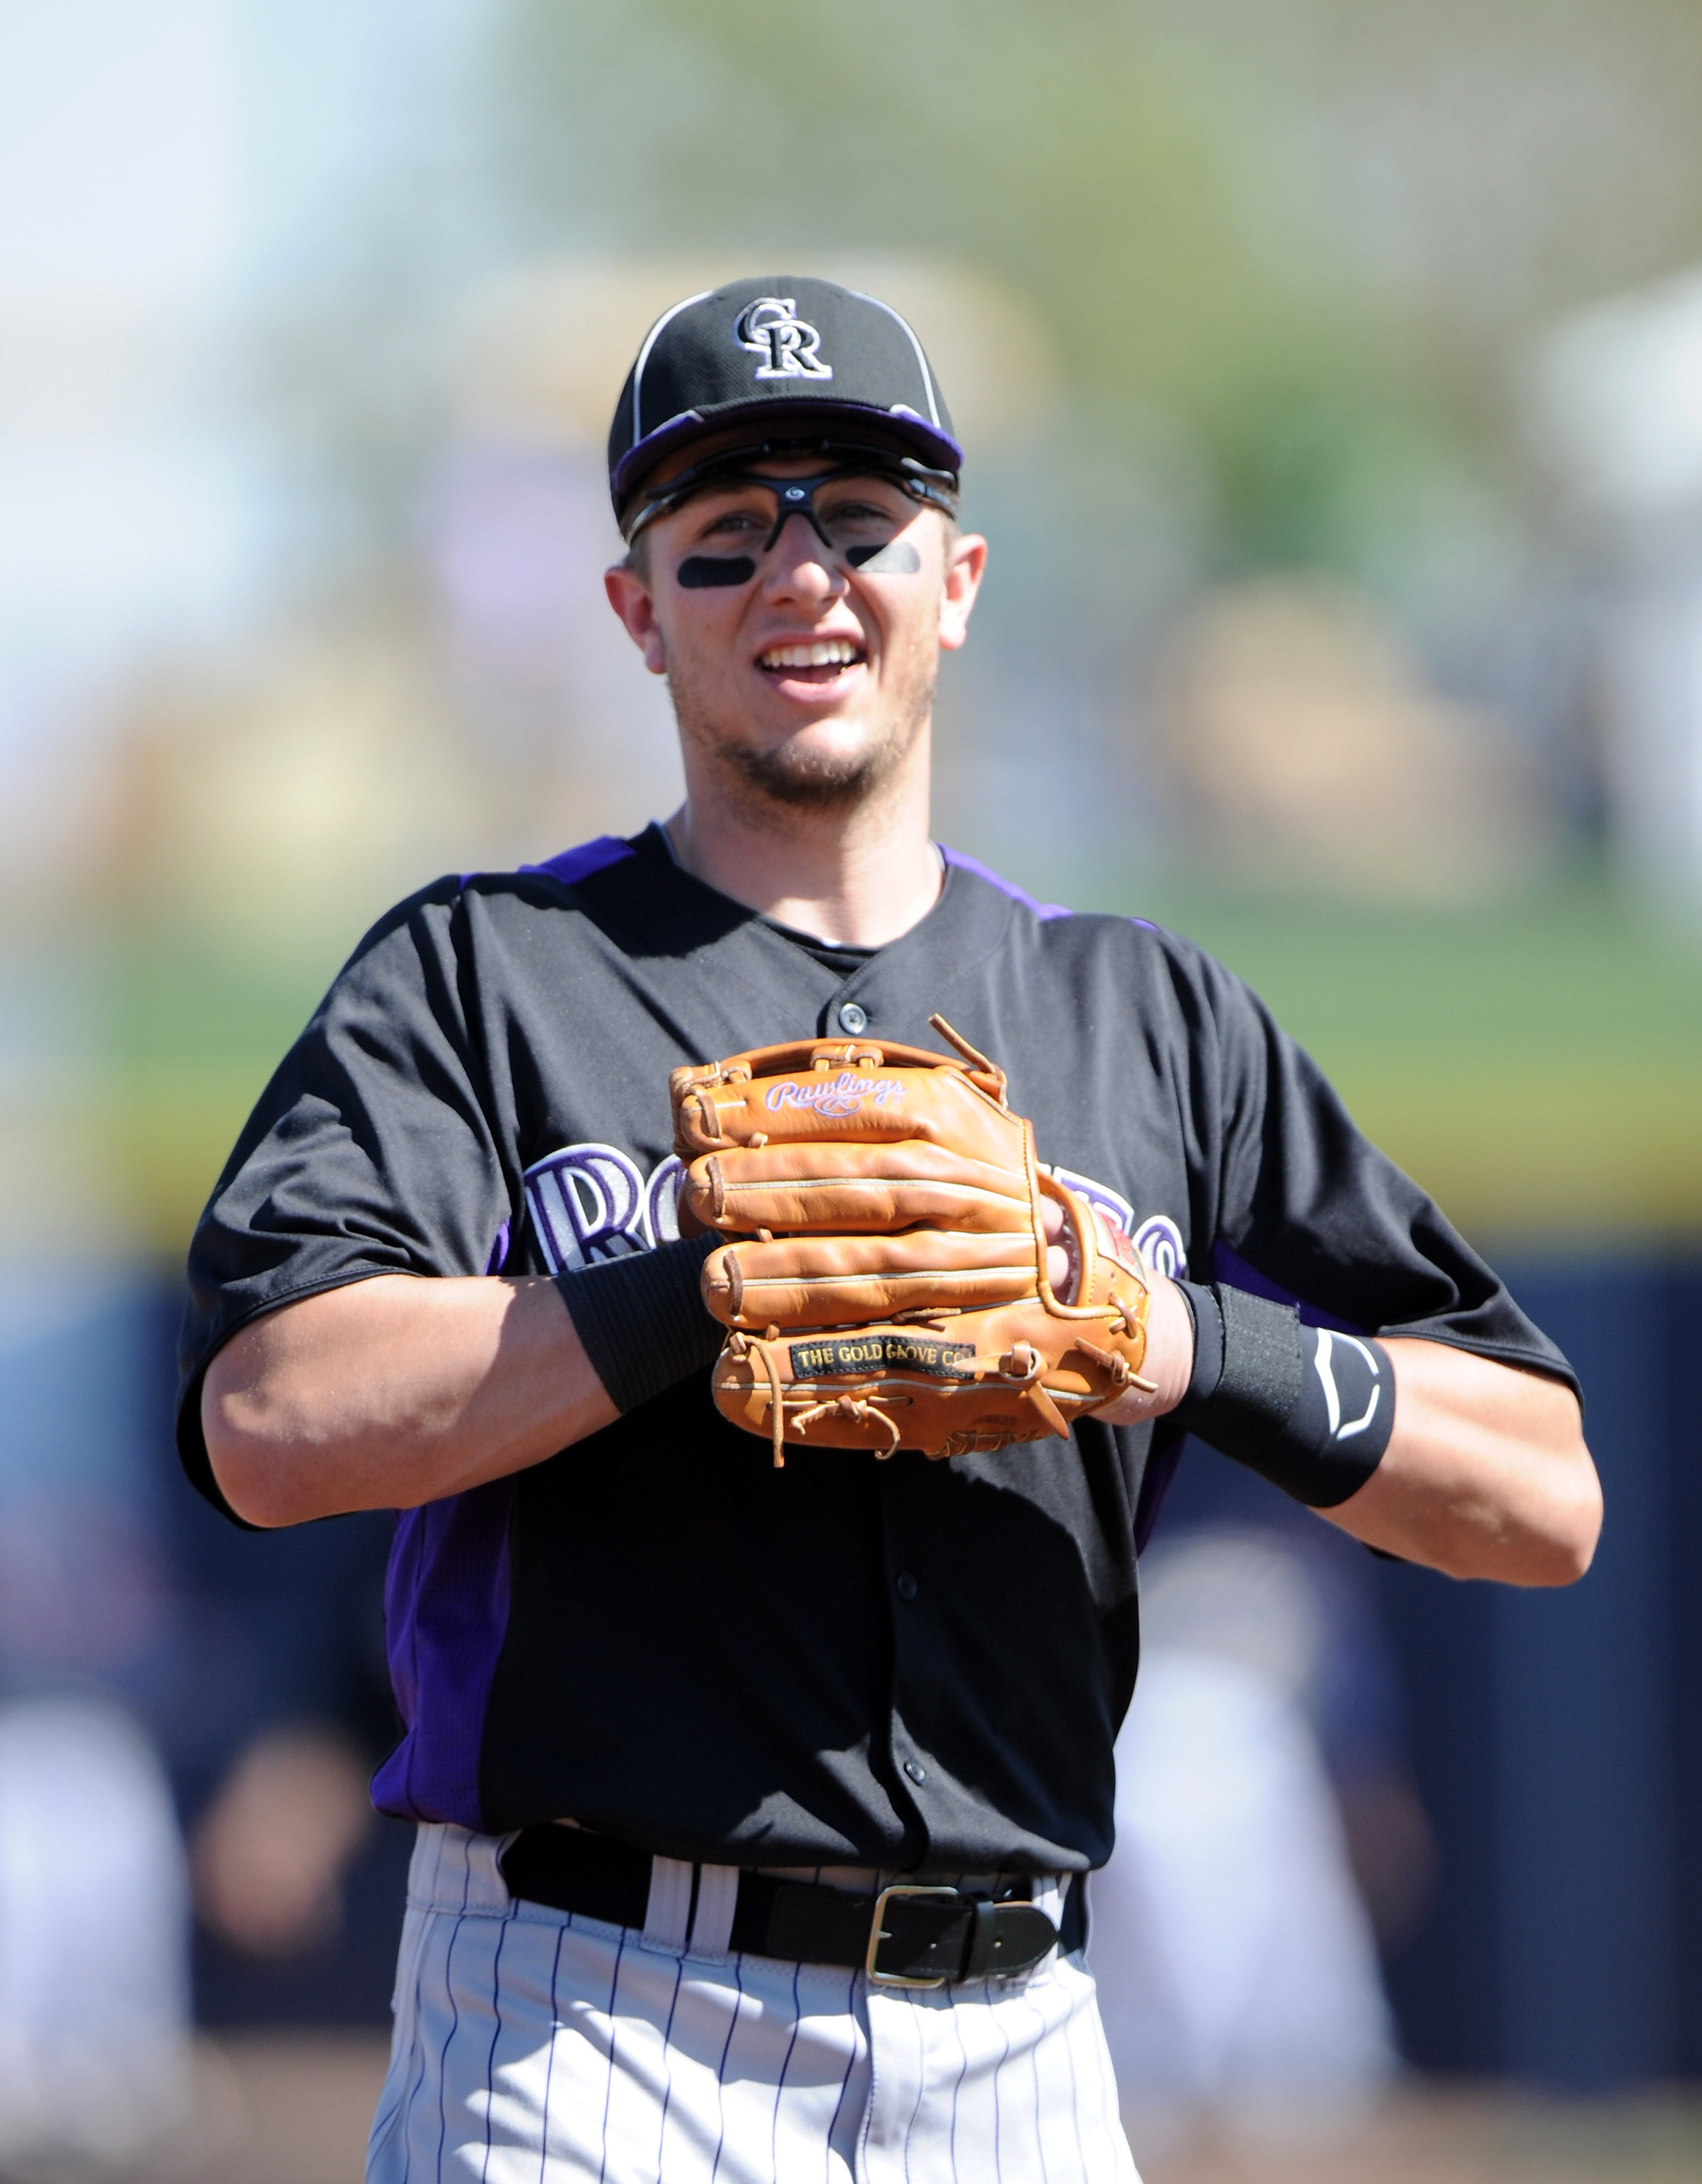 PEORIA, AZ - MARCH 02:  Troy Tulowitzki #2 of the Colorado Rockies smiles on the field against the San Diego Padres during spring training at Peoria Stadium on March 2, 2011 in Peoria, Arizona.  (Photo by Harry How/Getty Images)